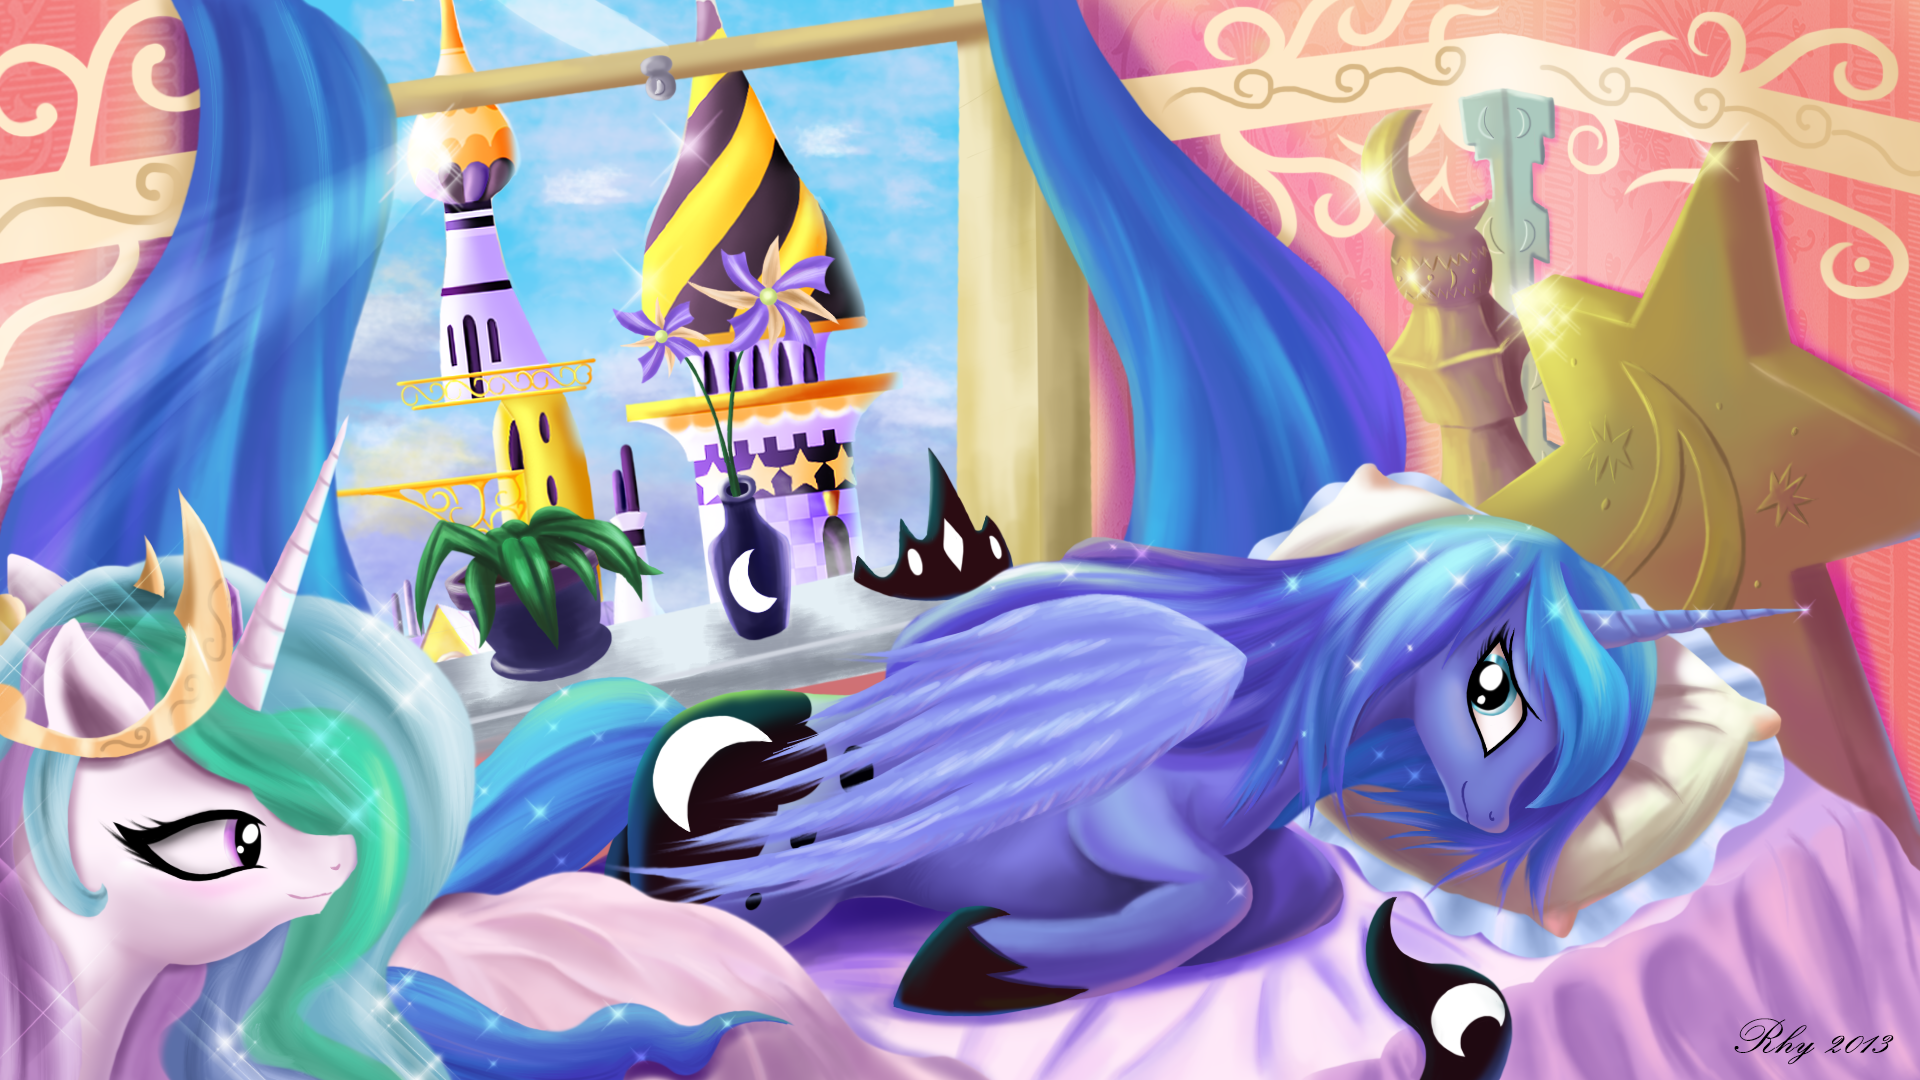 Princess Luna By Rhythmpopfox On Deviantart